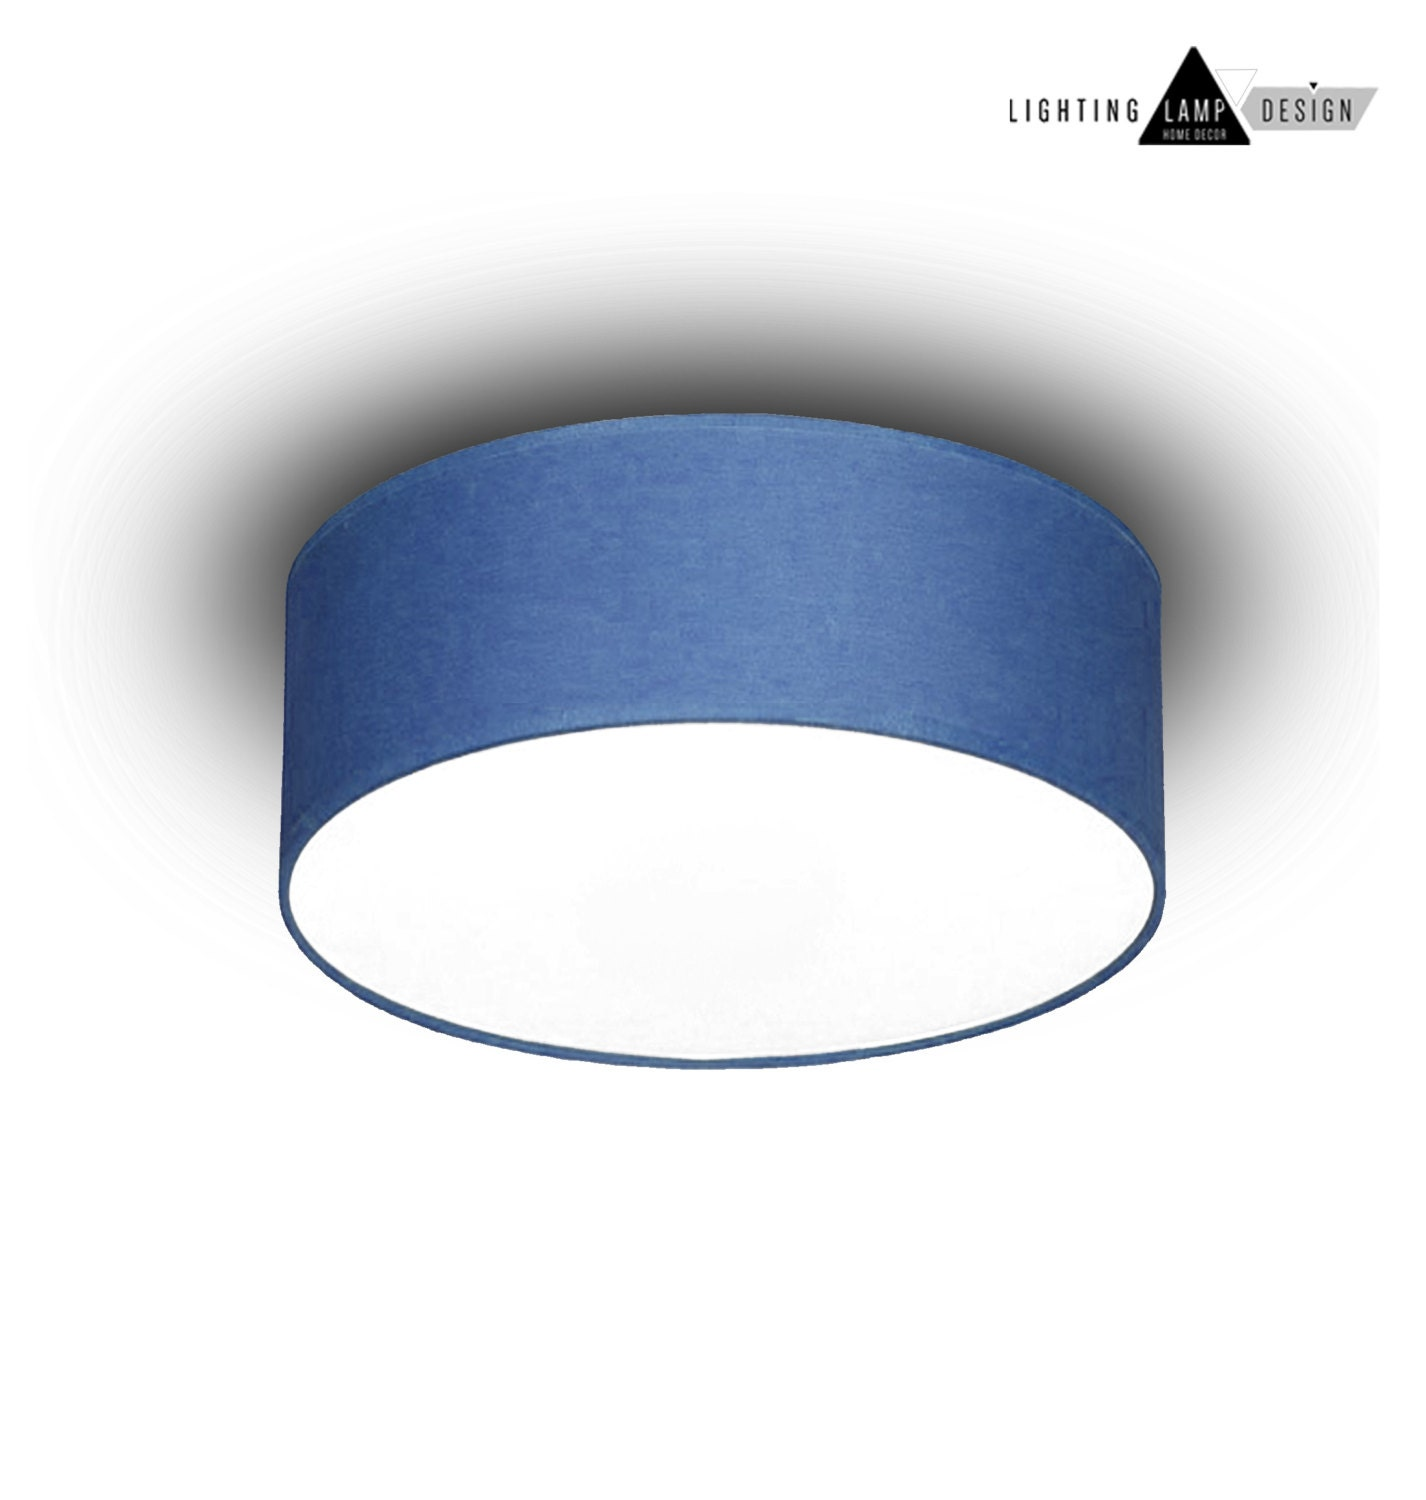 Blue flush mount ceiling -Ceiling lamp shade - Blue Kids light ...